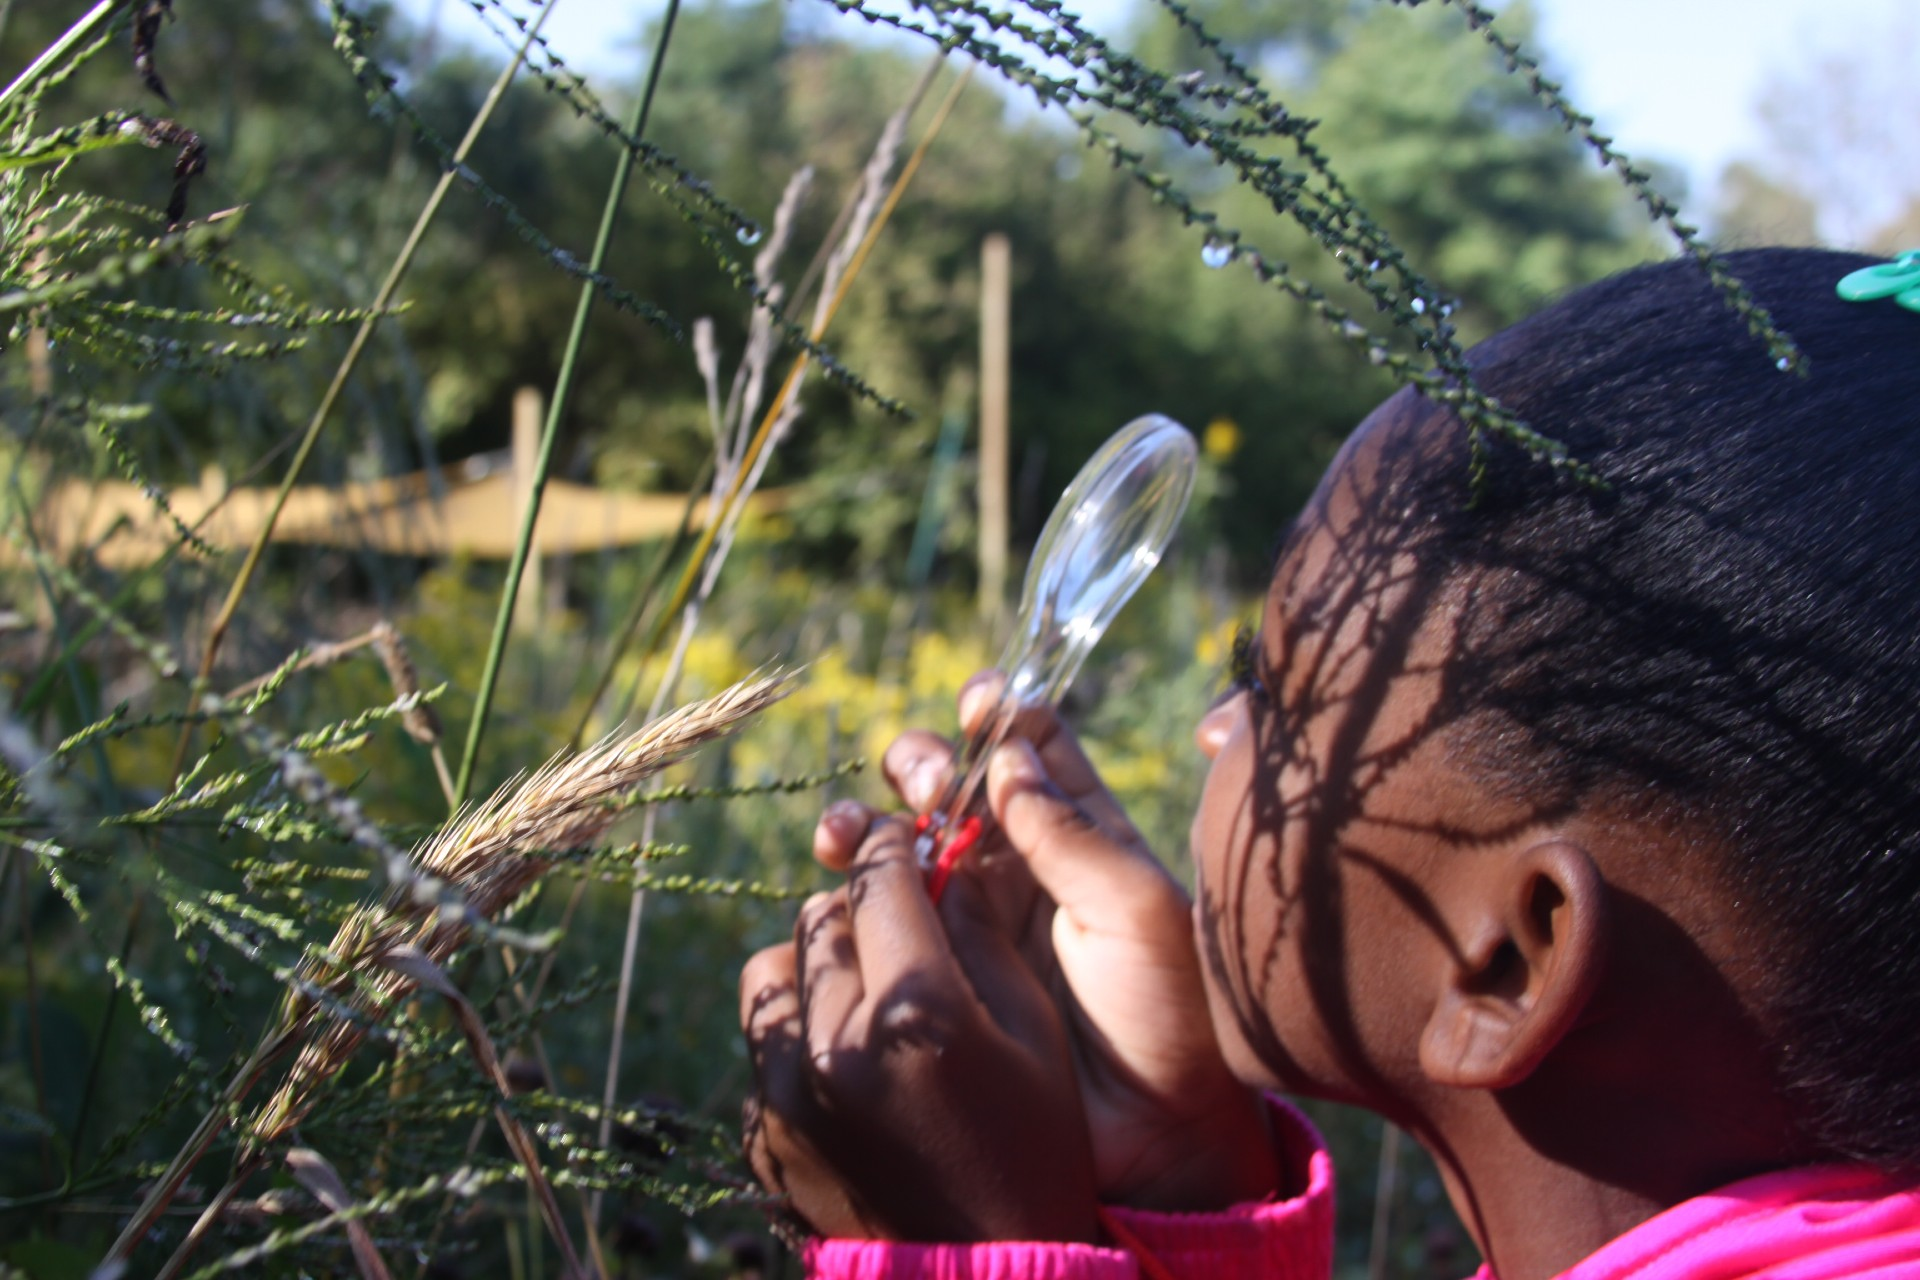 Child looking at plants through a magnifying glass